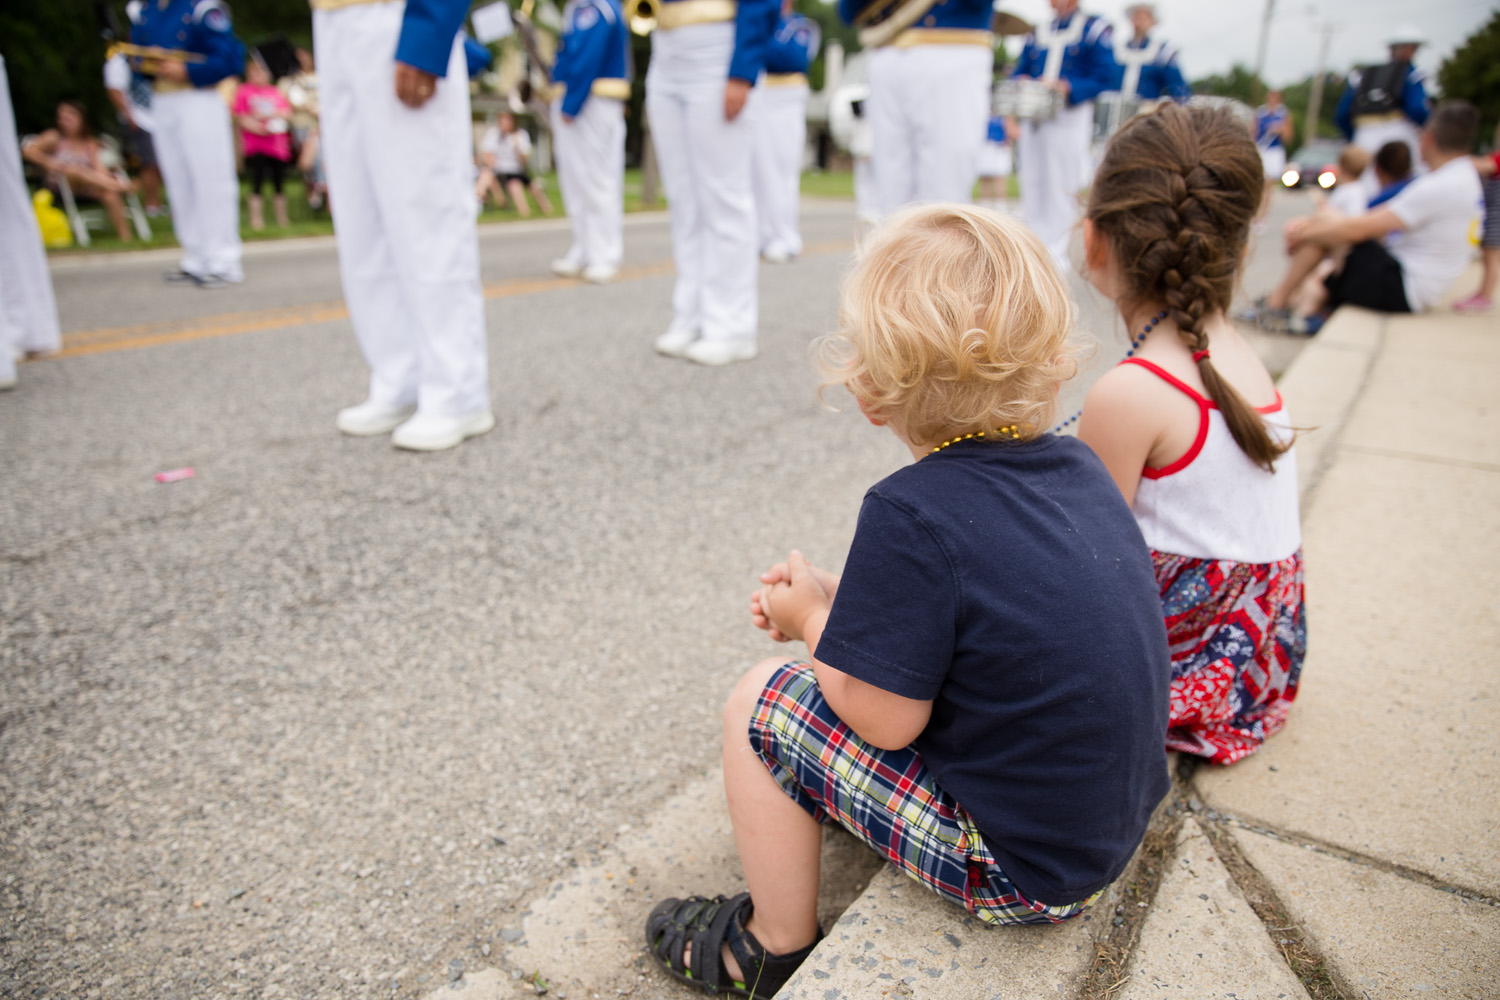 4th-of-July-parade-2015-13-ss.jpg